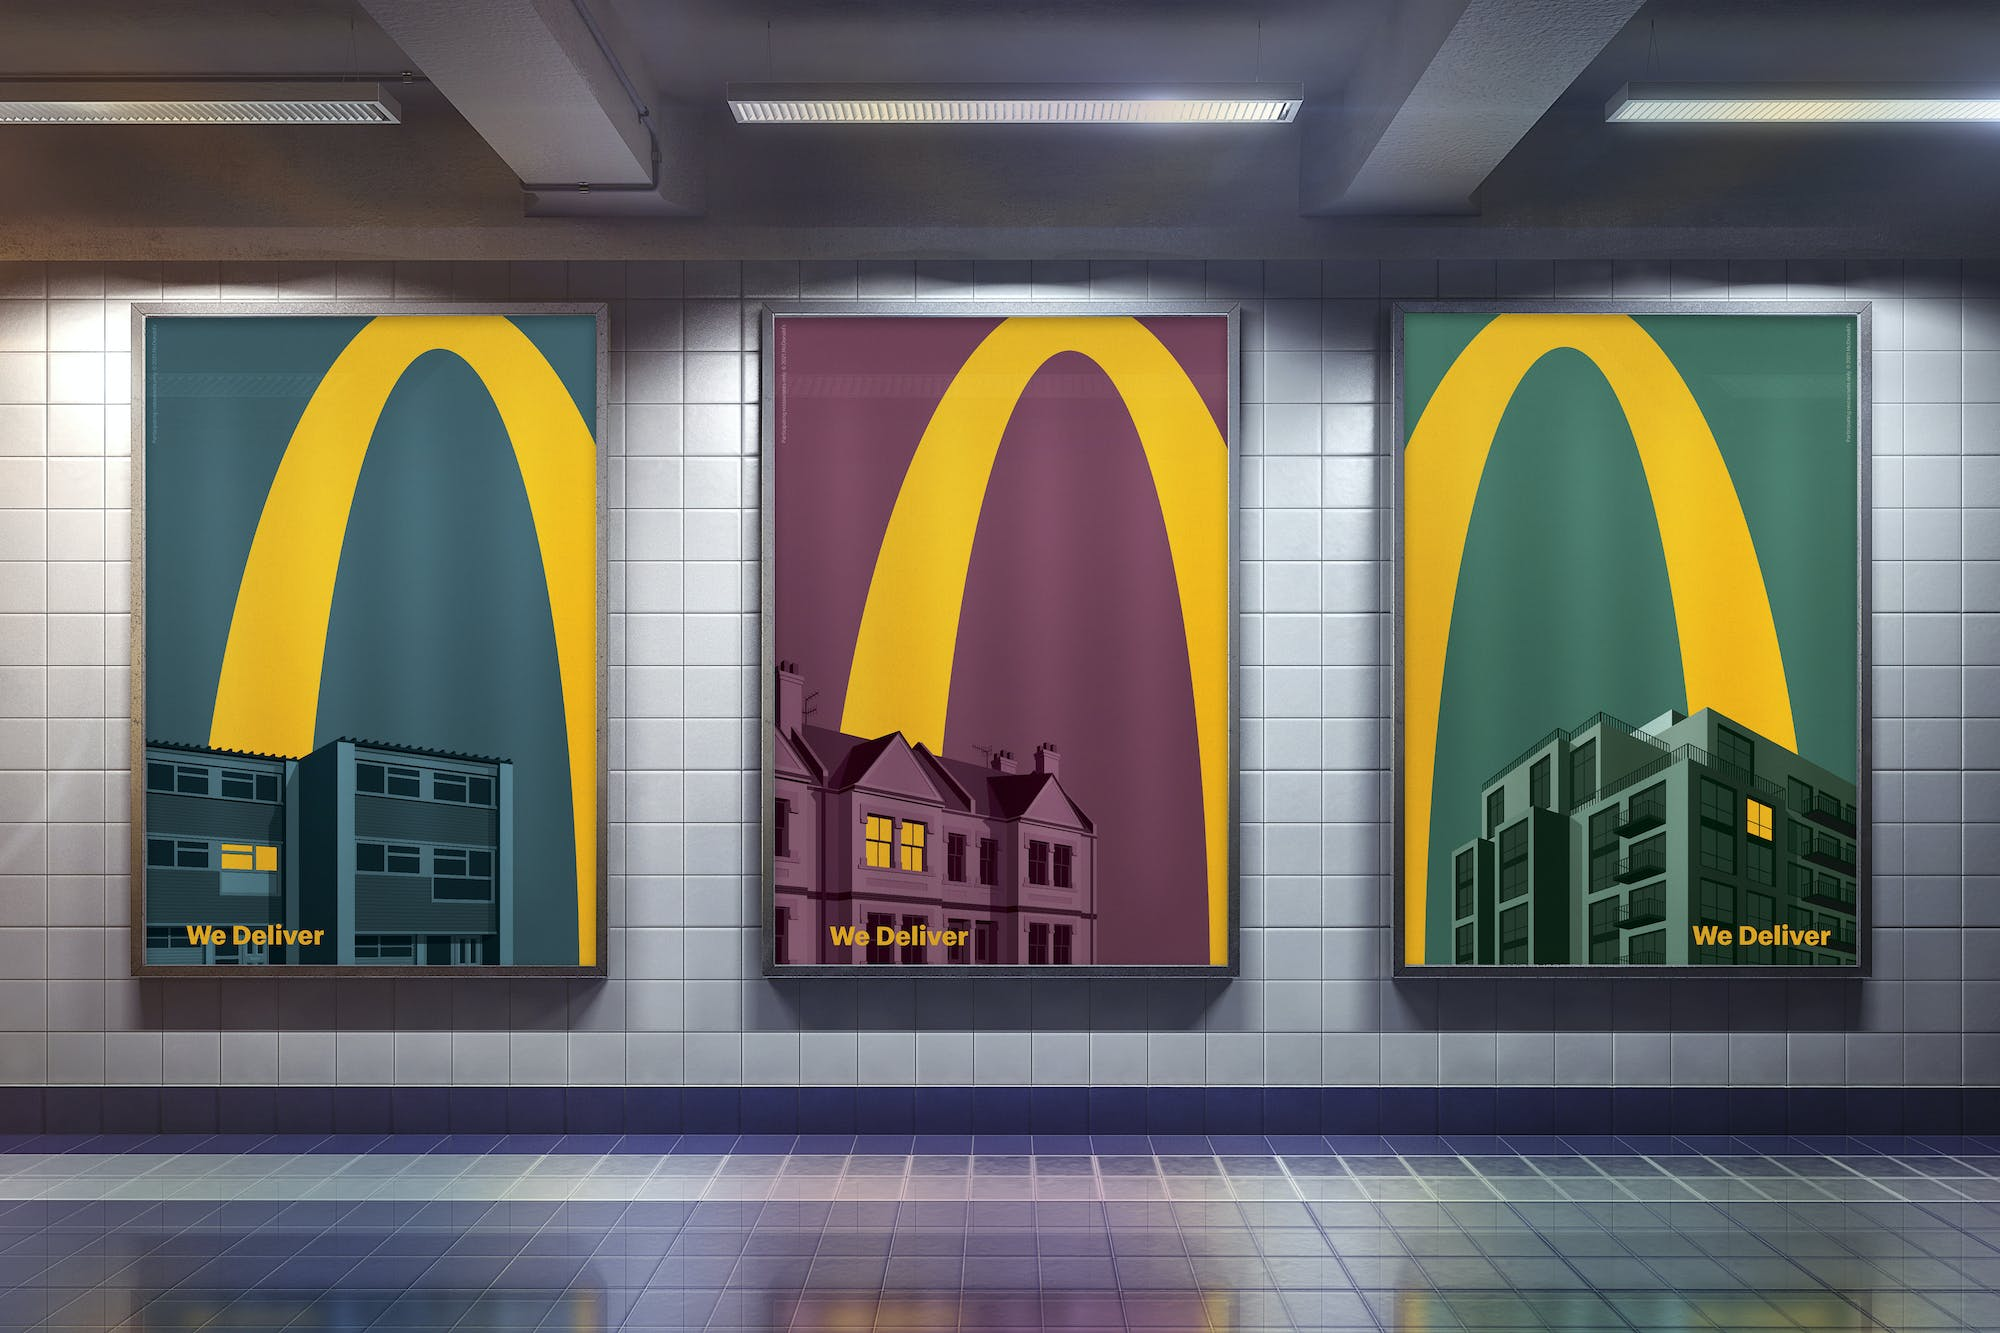 Stylish new McDonald's ads promote home delivery service